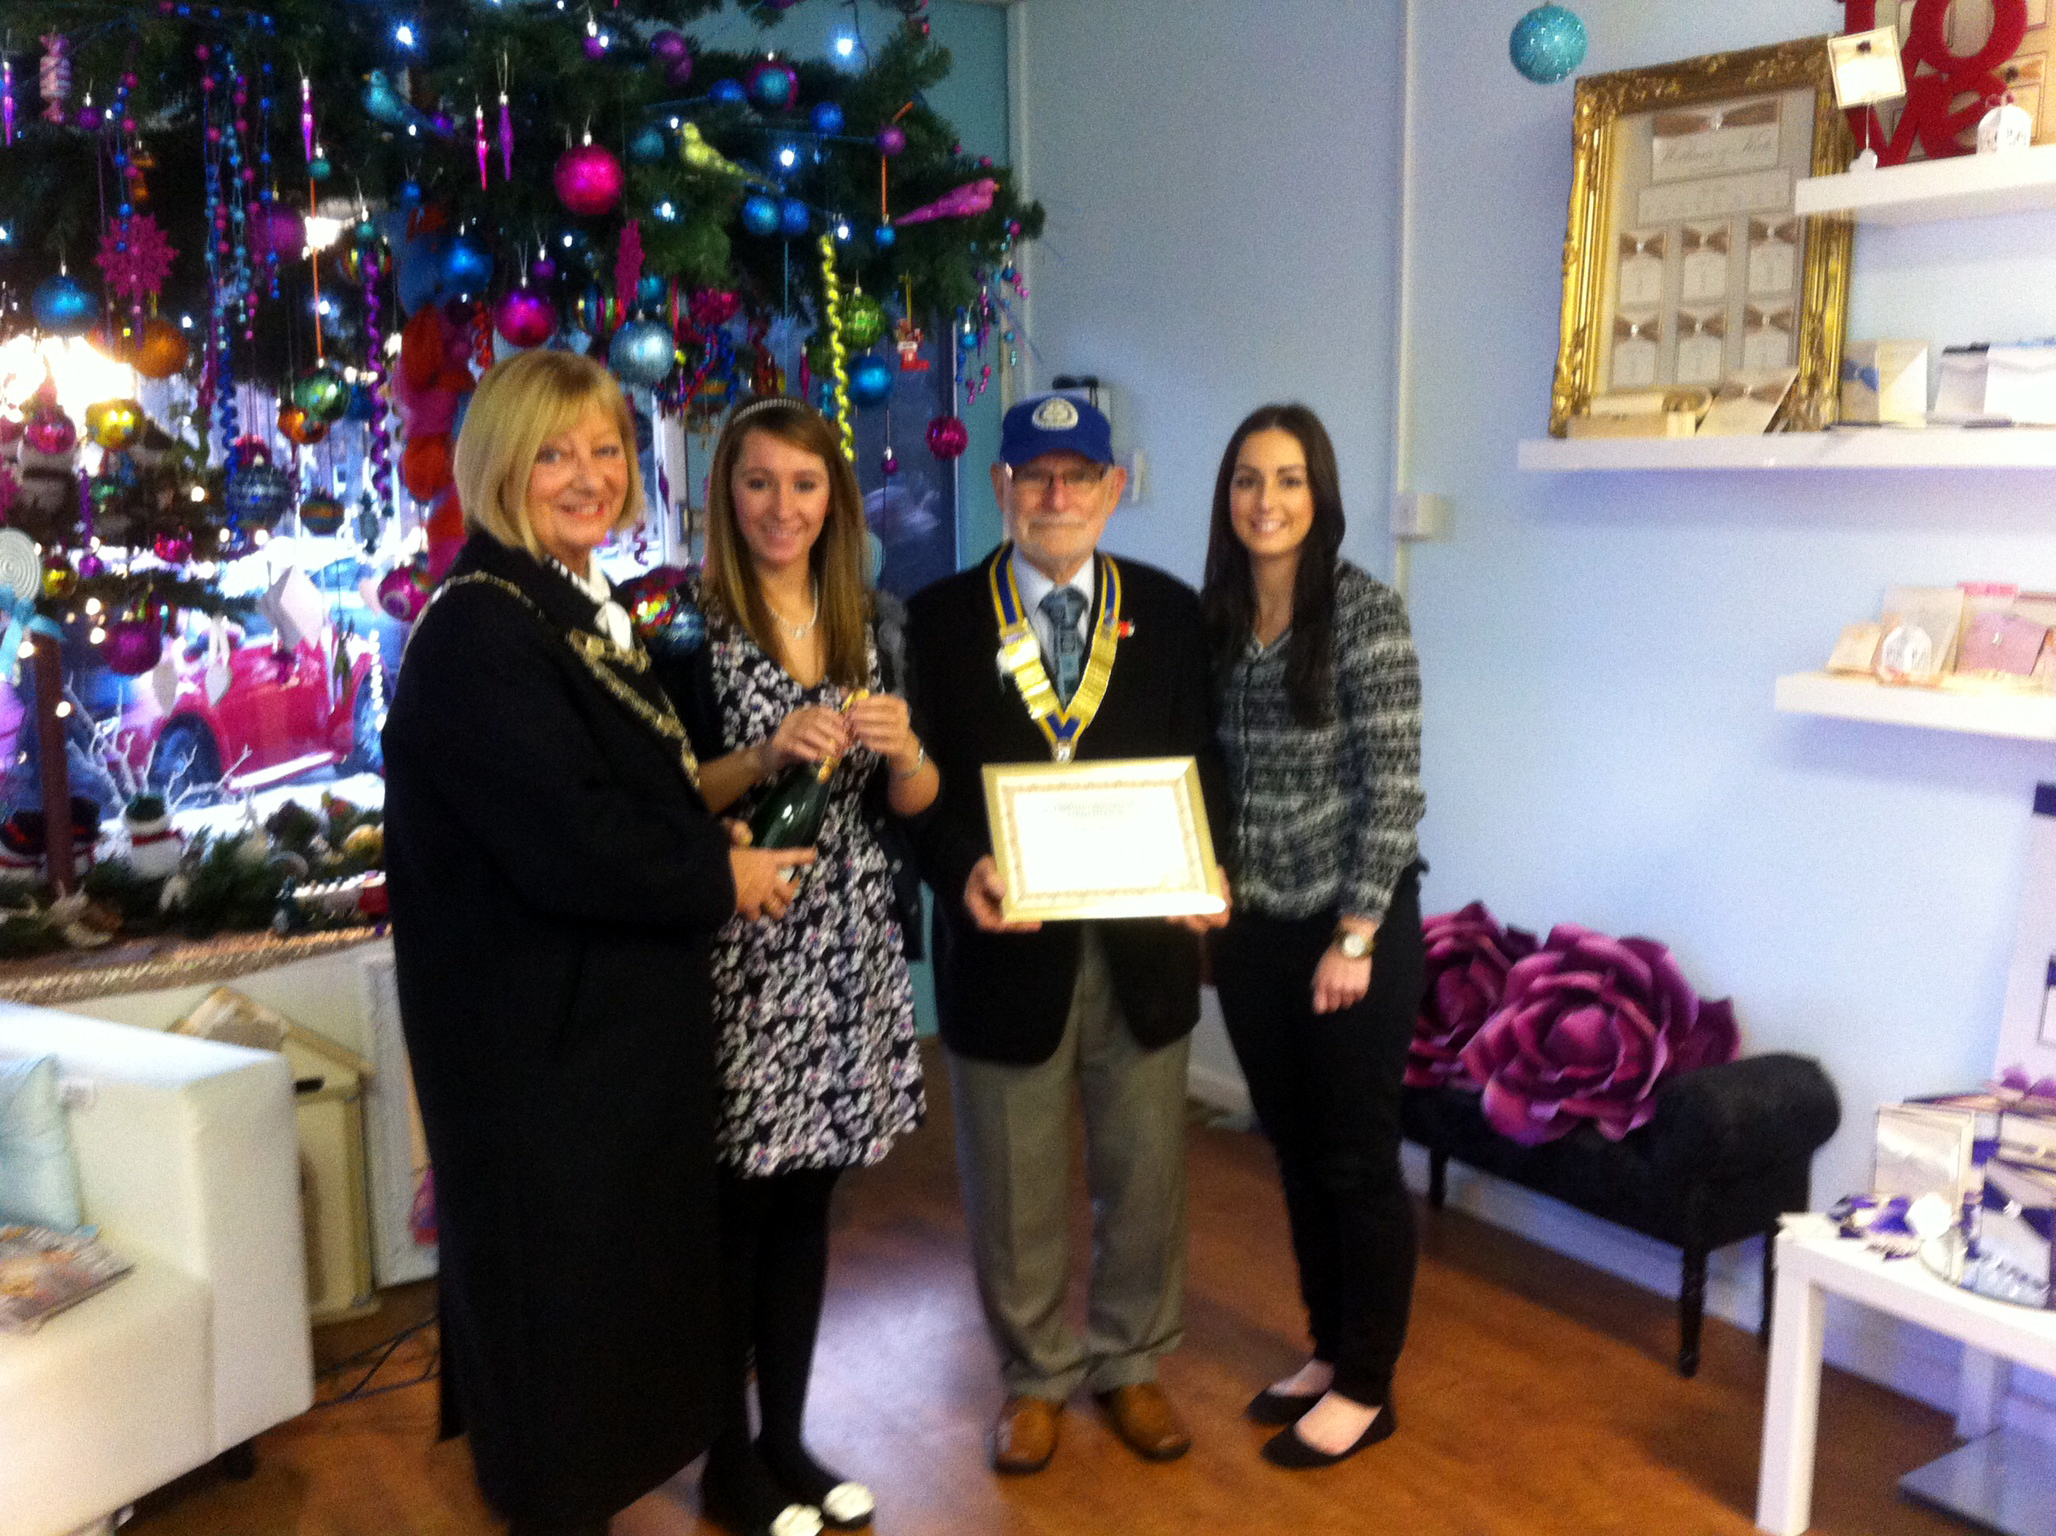 Mayor of Maghull Cllr Joan Deegan and Maghull & Aughton Rotary Club president Simon Rennie with Best Dressed Window winners, The Paper Doll wedding stationers' Sarah-Jayne Cluney and colleague Heather Williams.